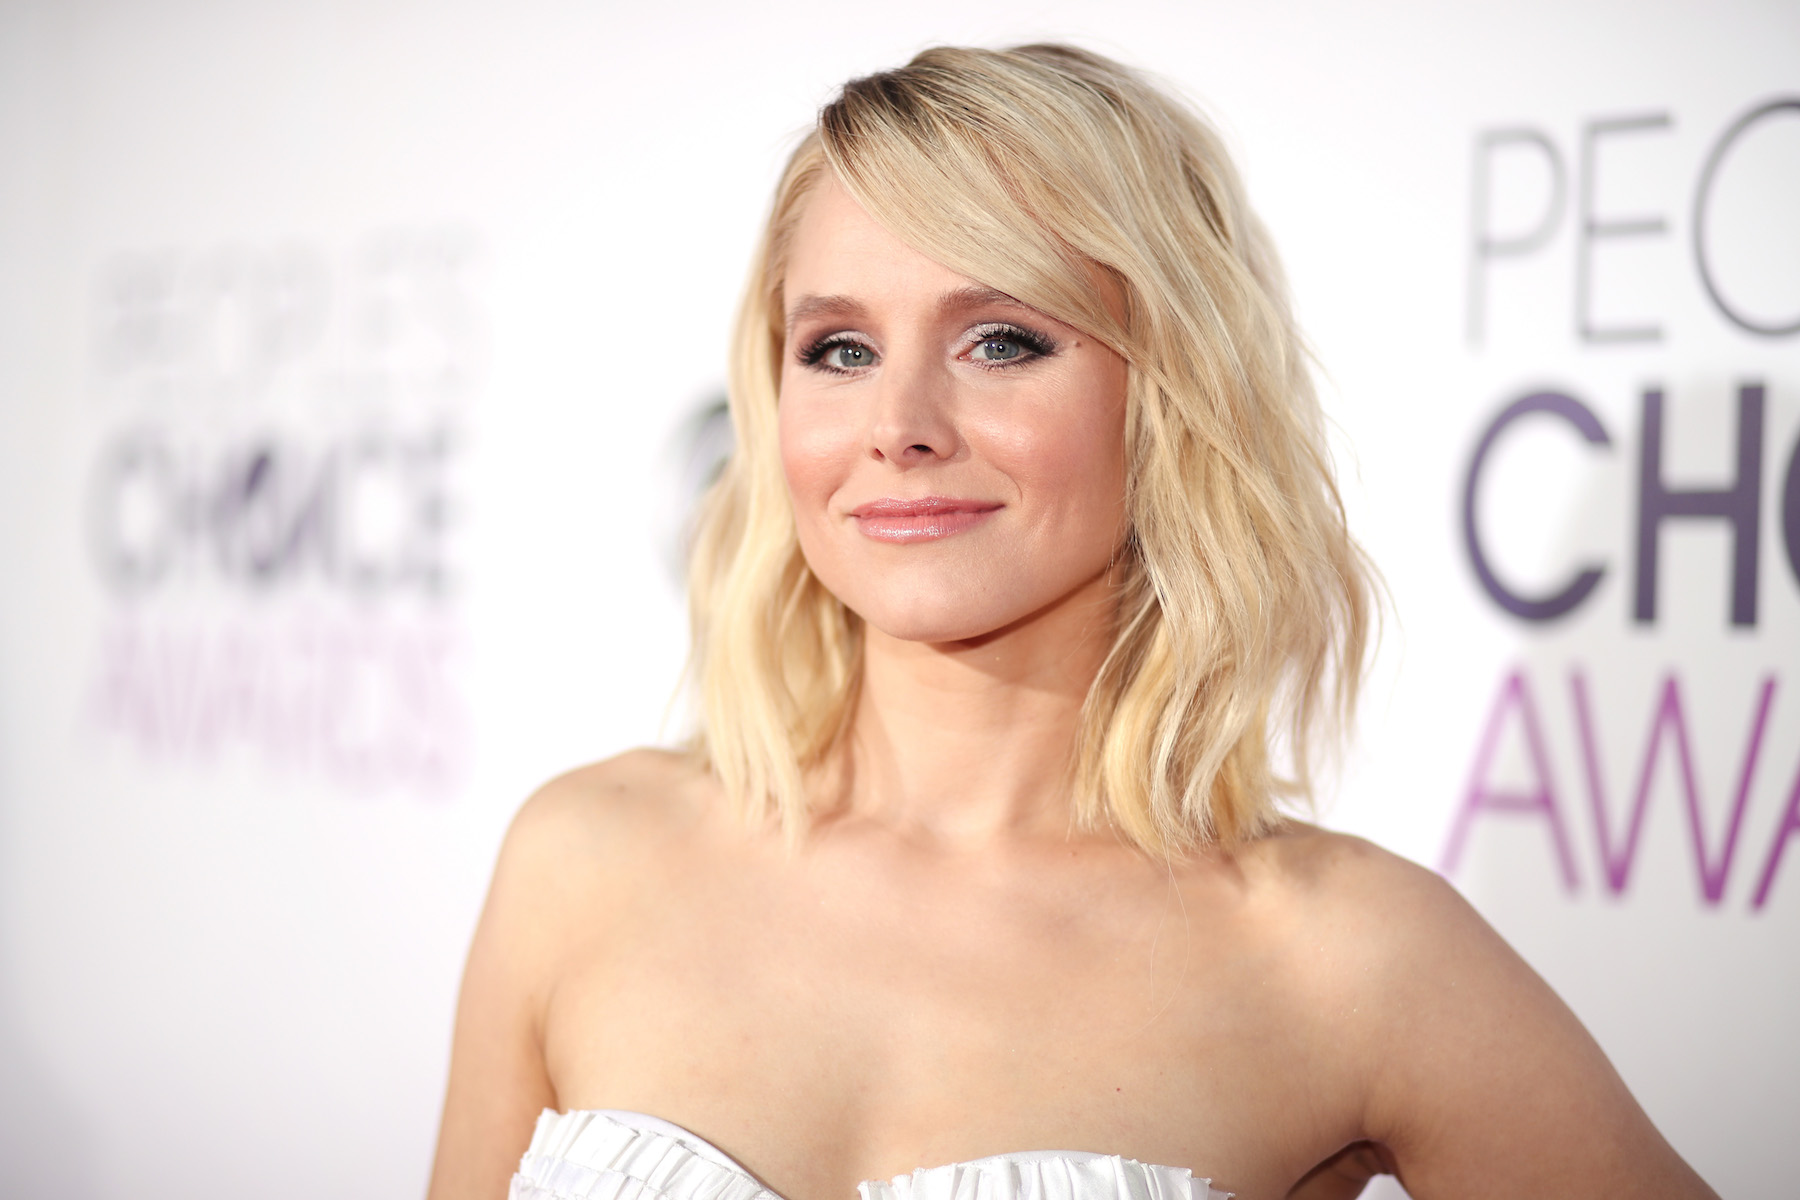 Kristen Bell at Awards Show